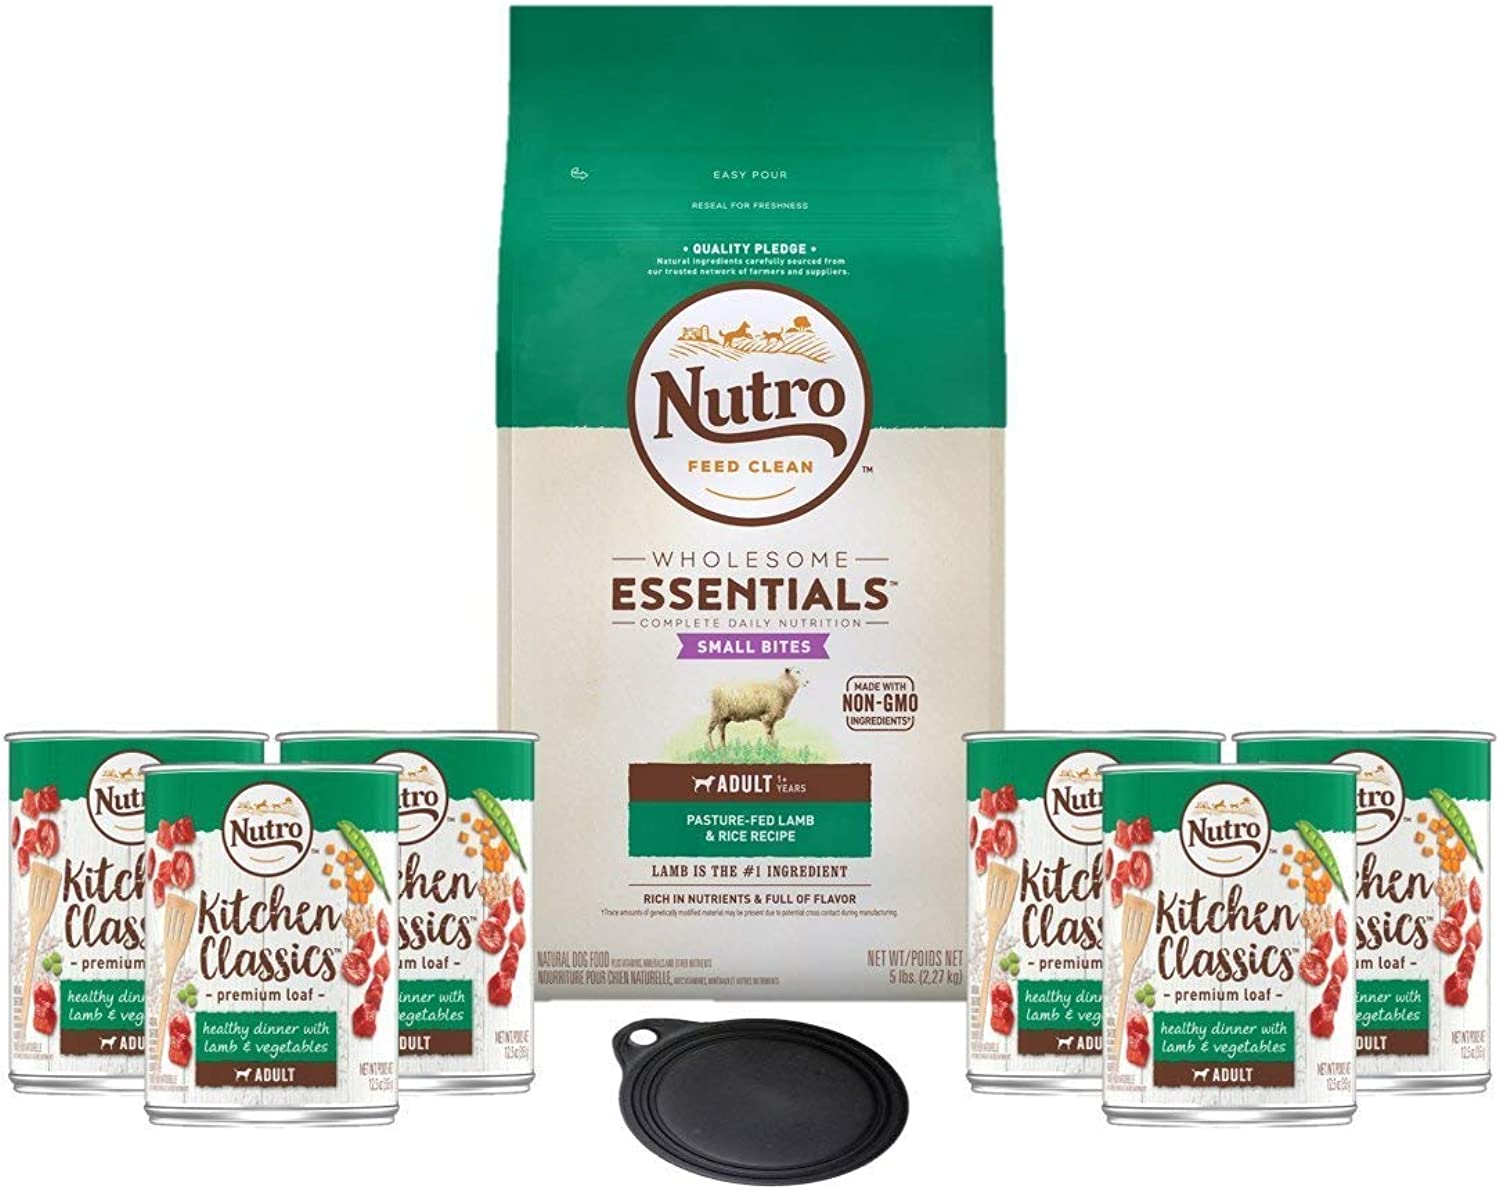 Nutro Dog Food Grain FreeAdult Recipe Lamb & Rice Small Bites Dry Dog Food 15lb Bag 6 Kitchen Classics Adult Wet Dog Food Lamb & Vegetables Dinner 12.5 oz Cans 1 Lid 1 Dog Toy